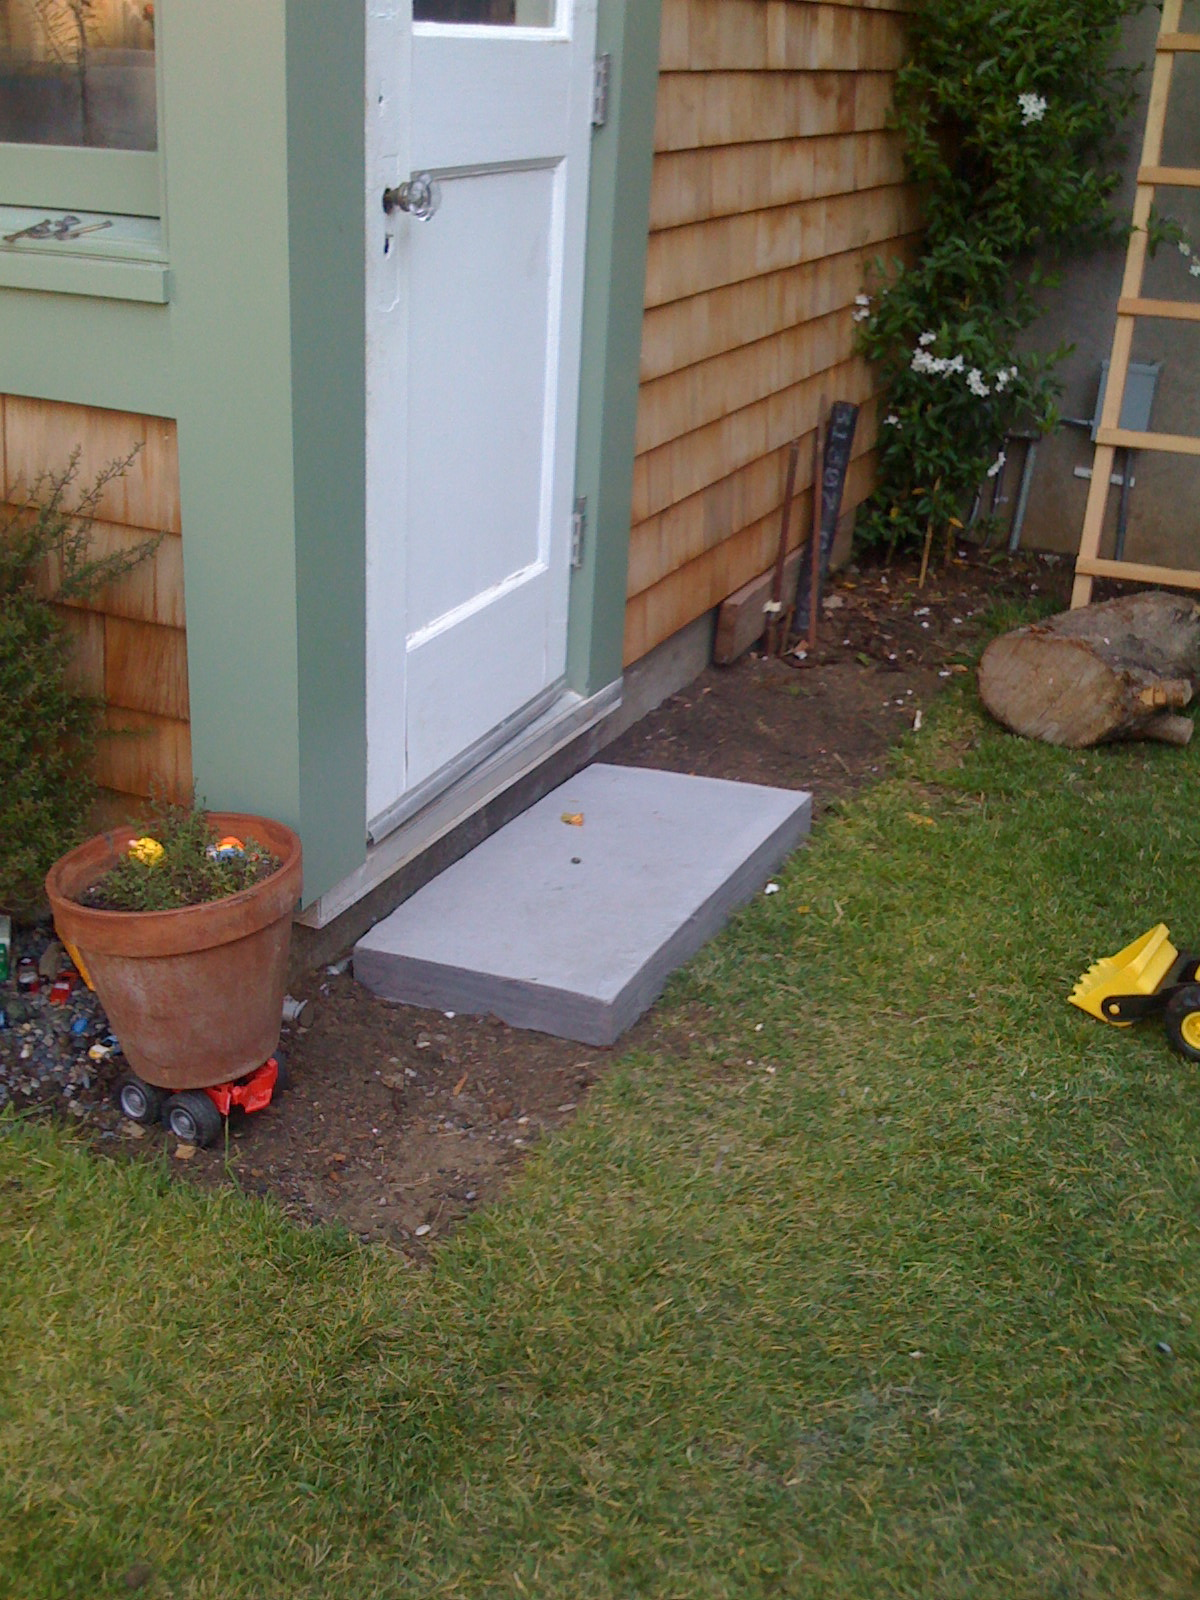 Concrete stoops for all the doors onto the garden. & The Shingled House: Concrete Door Stoops